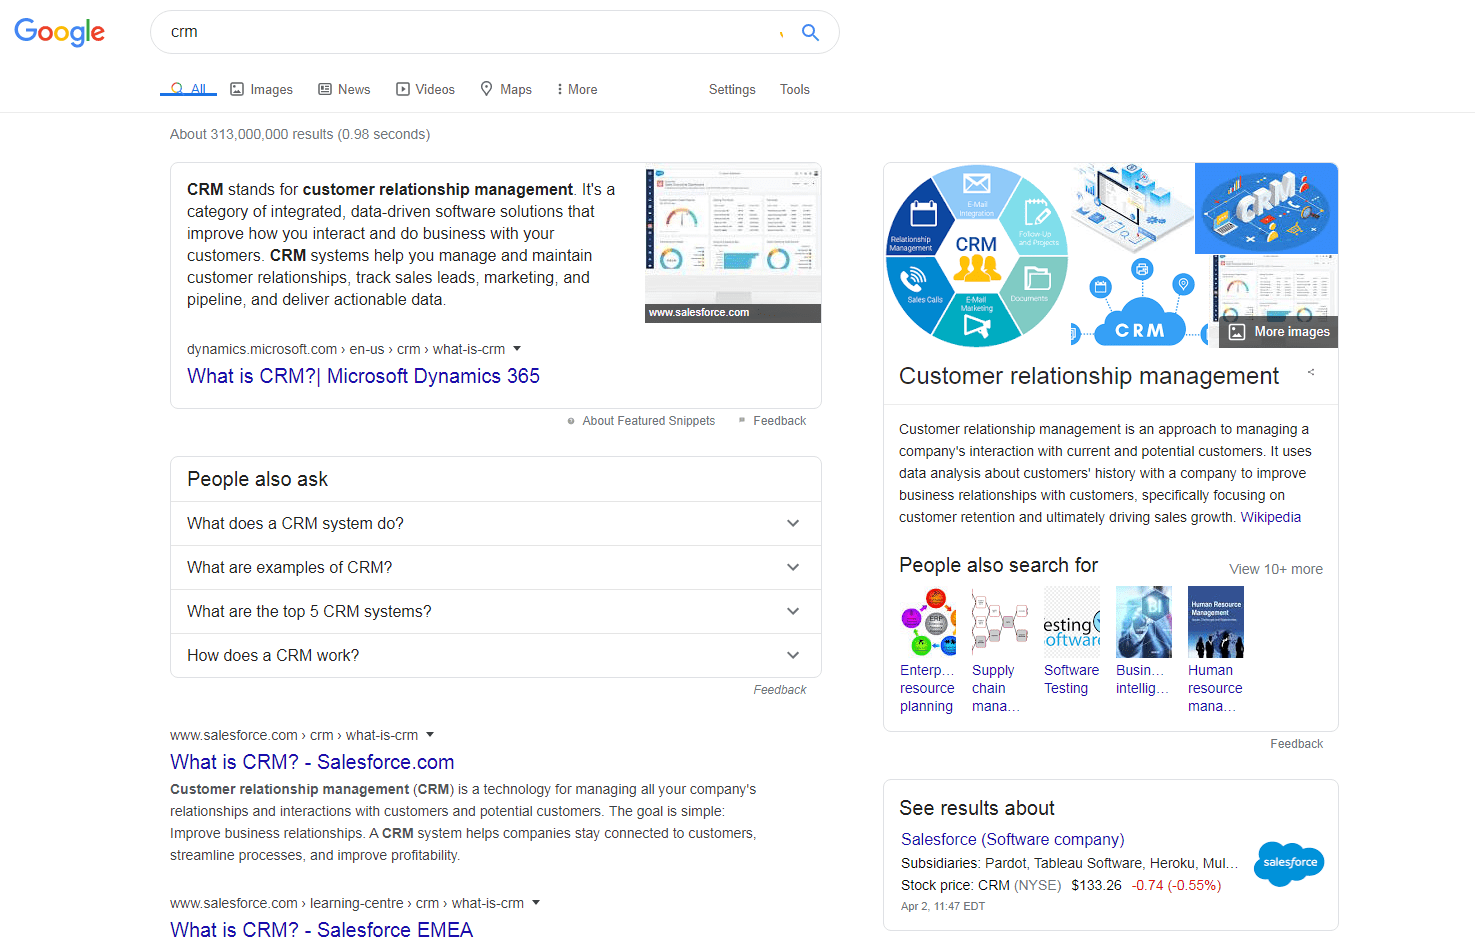 crm-no-image-results